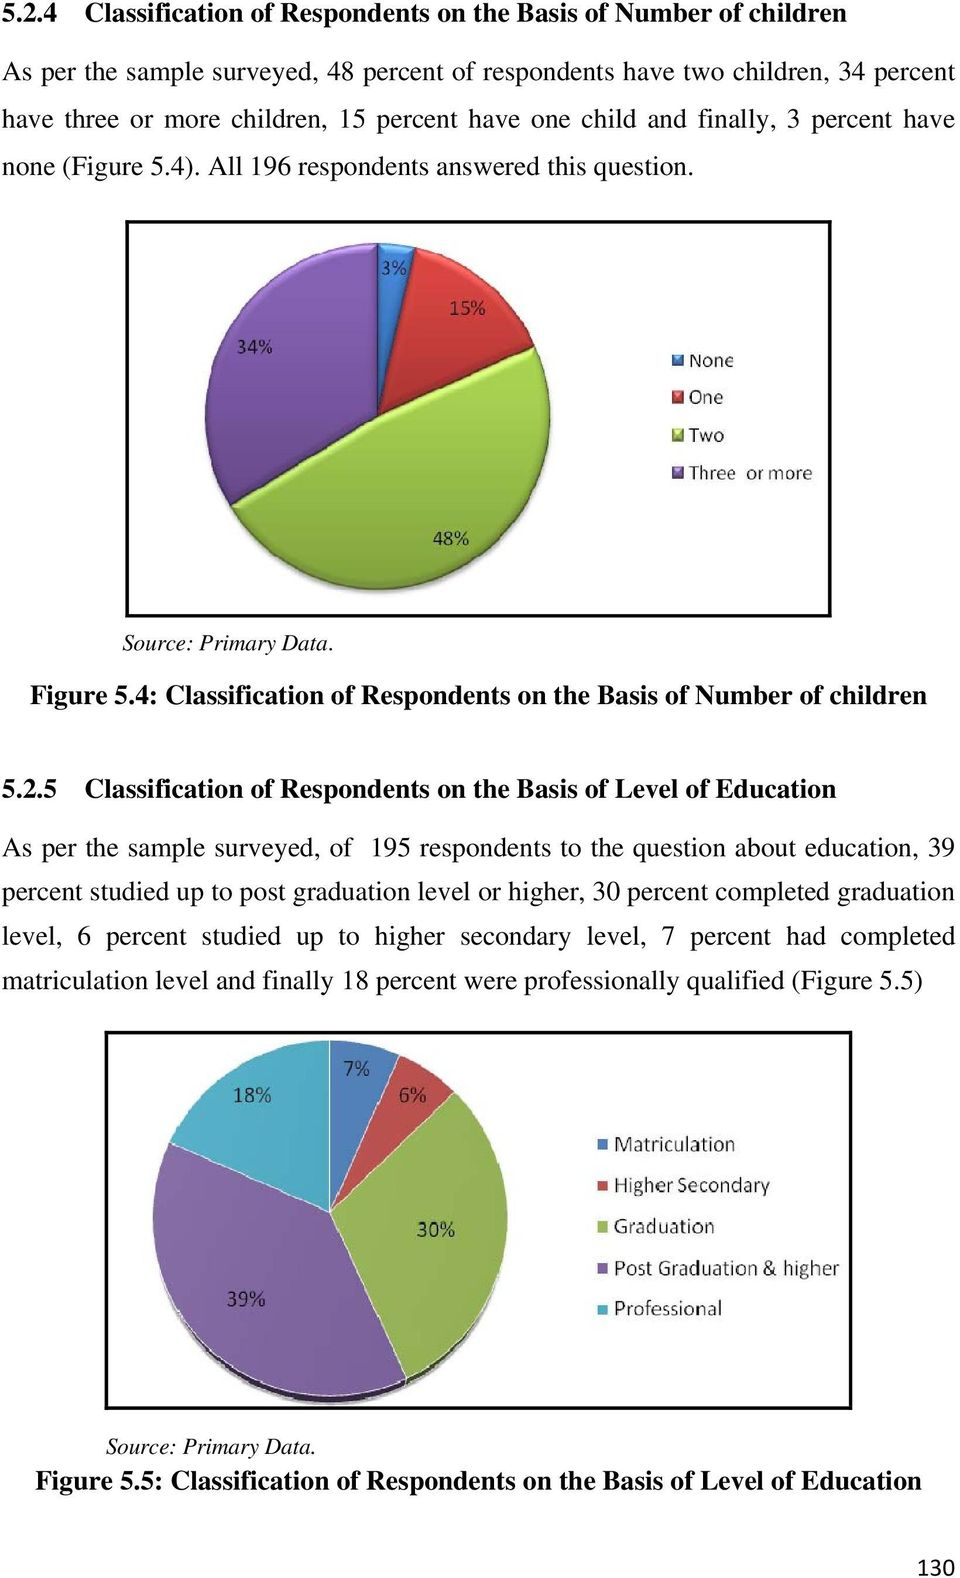 5 Classification of Respondents on the Basis of Level of Education As per the sample surveyed, of 195 respondents to the question about education, 39 percent studied up to post graduation level or